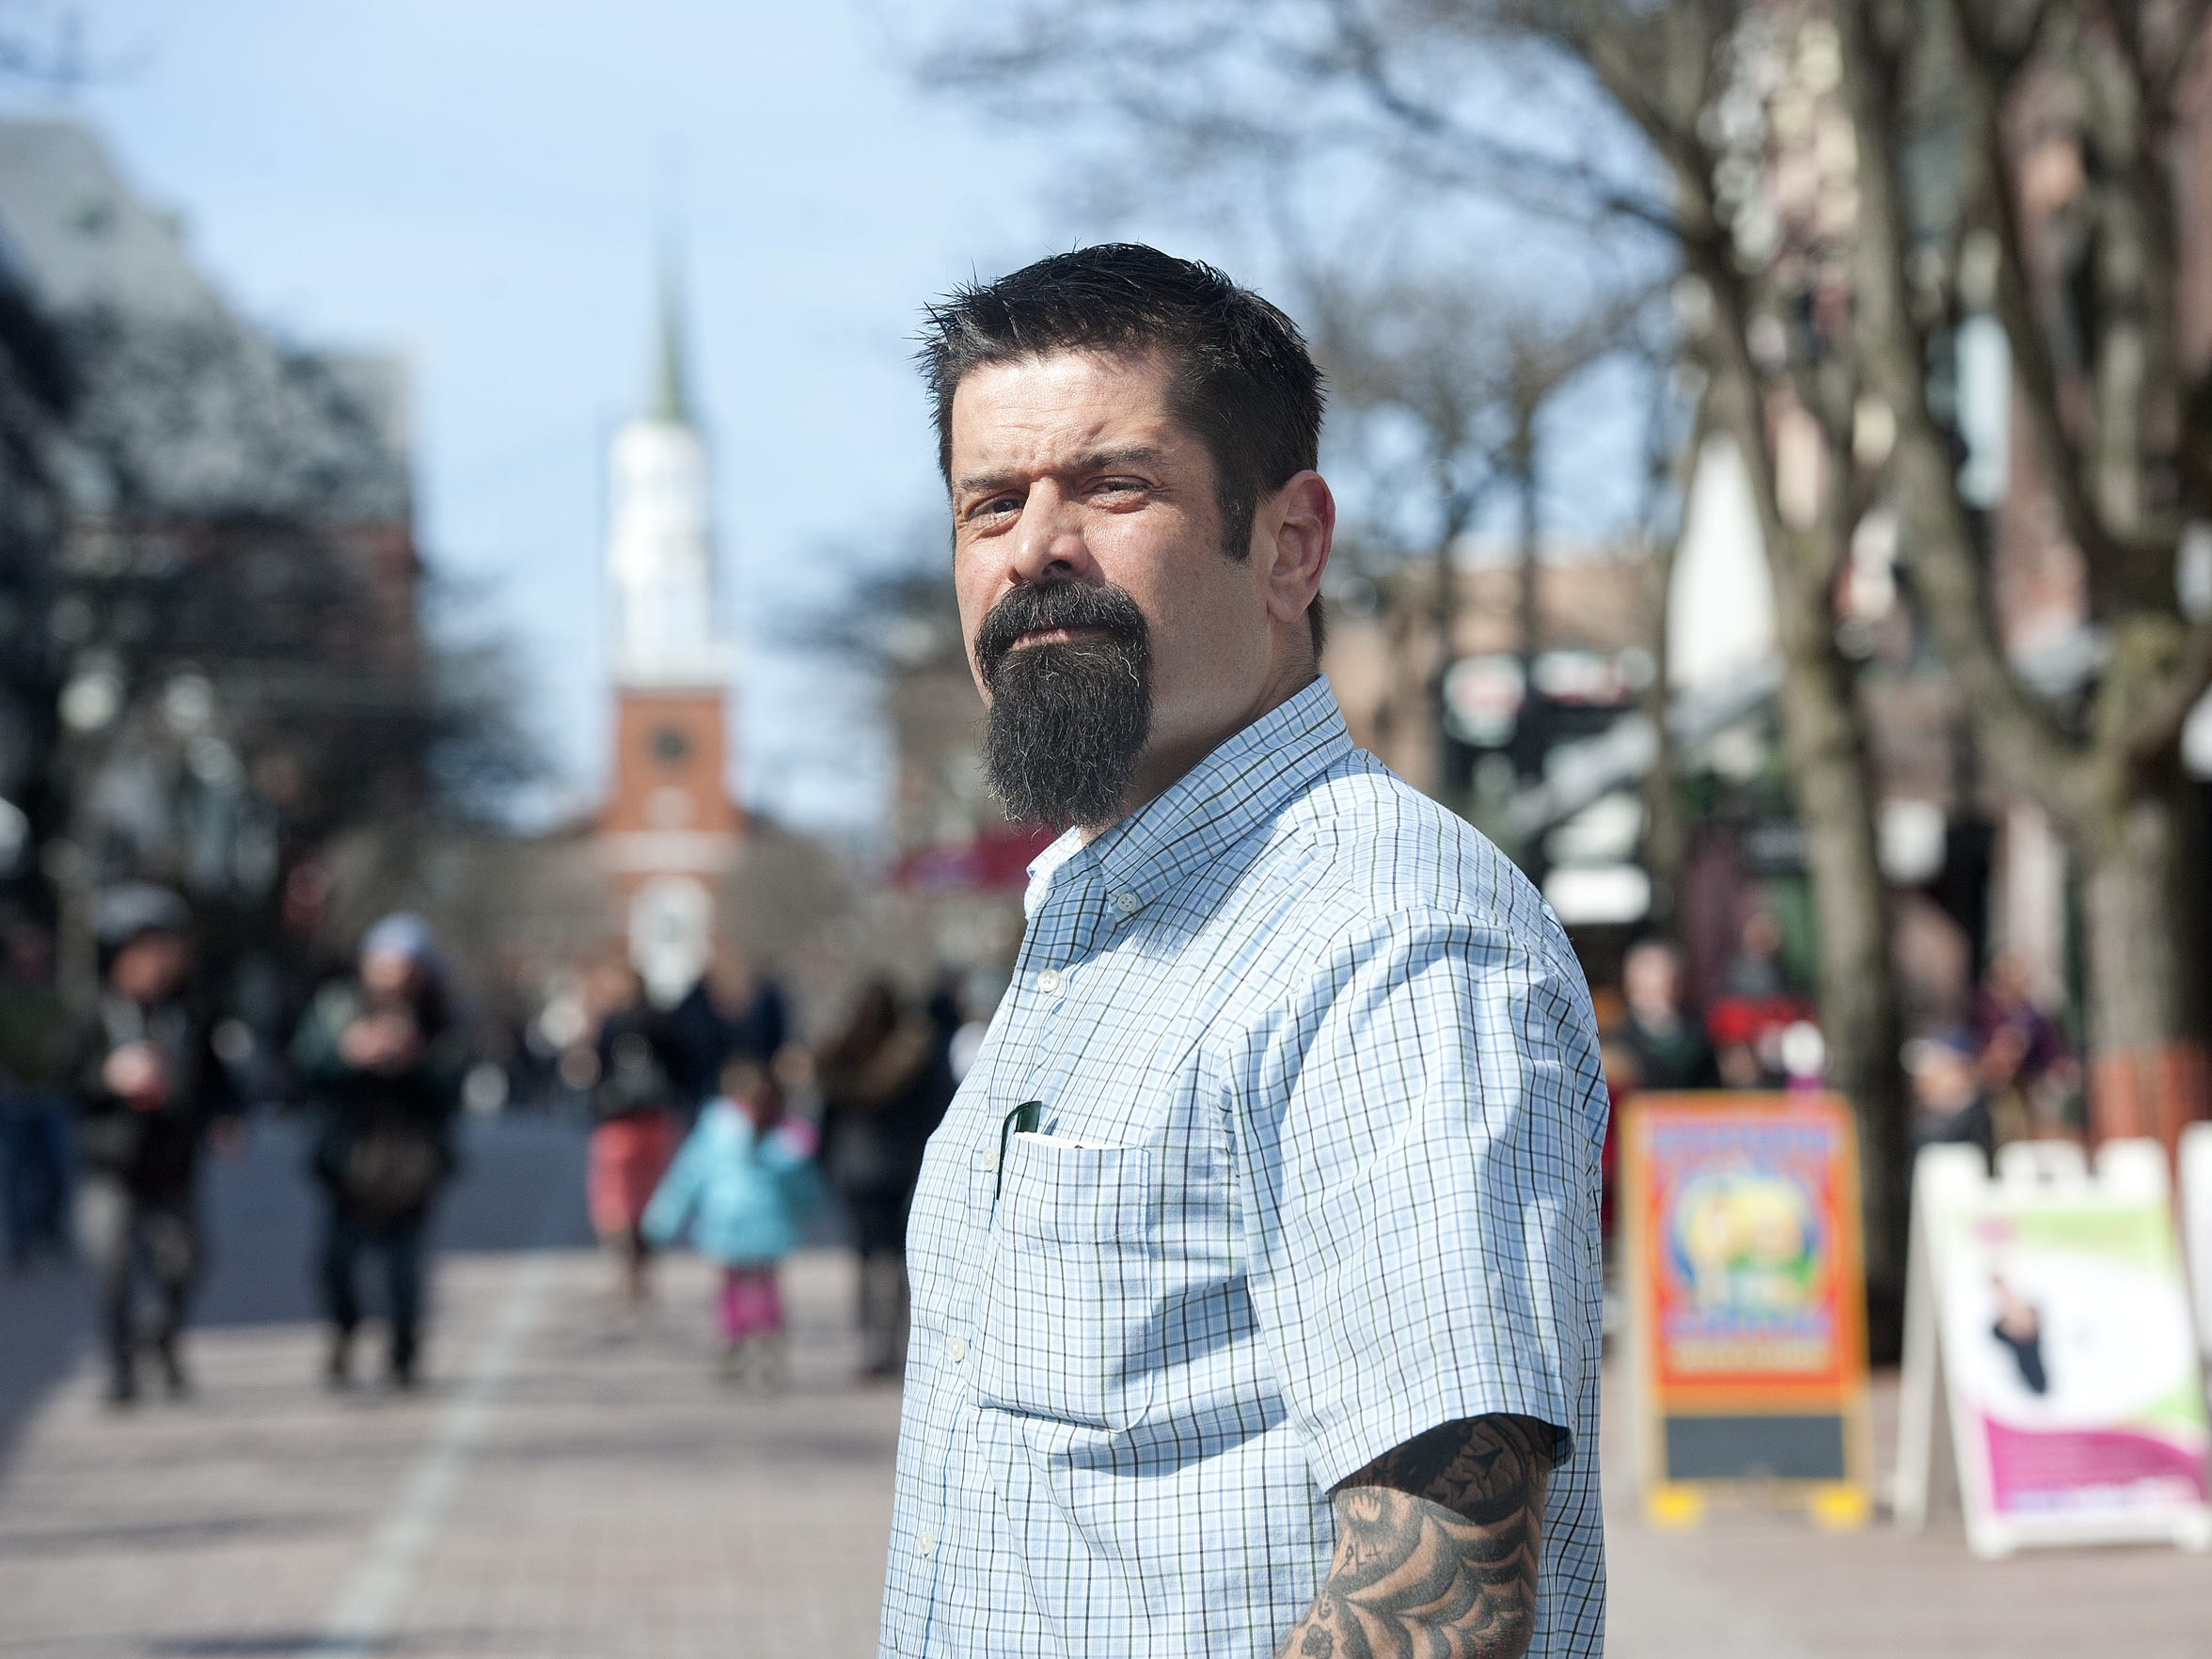 Justin Verette, a member of HowardCenter's Street Outreach Team, works with Burlington Police Department to aid in emergency calls where mental health and social assistance is needed.